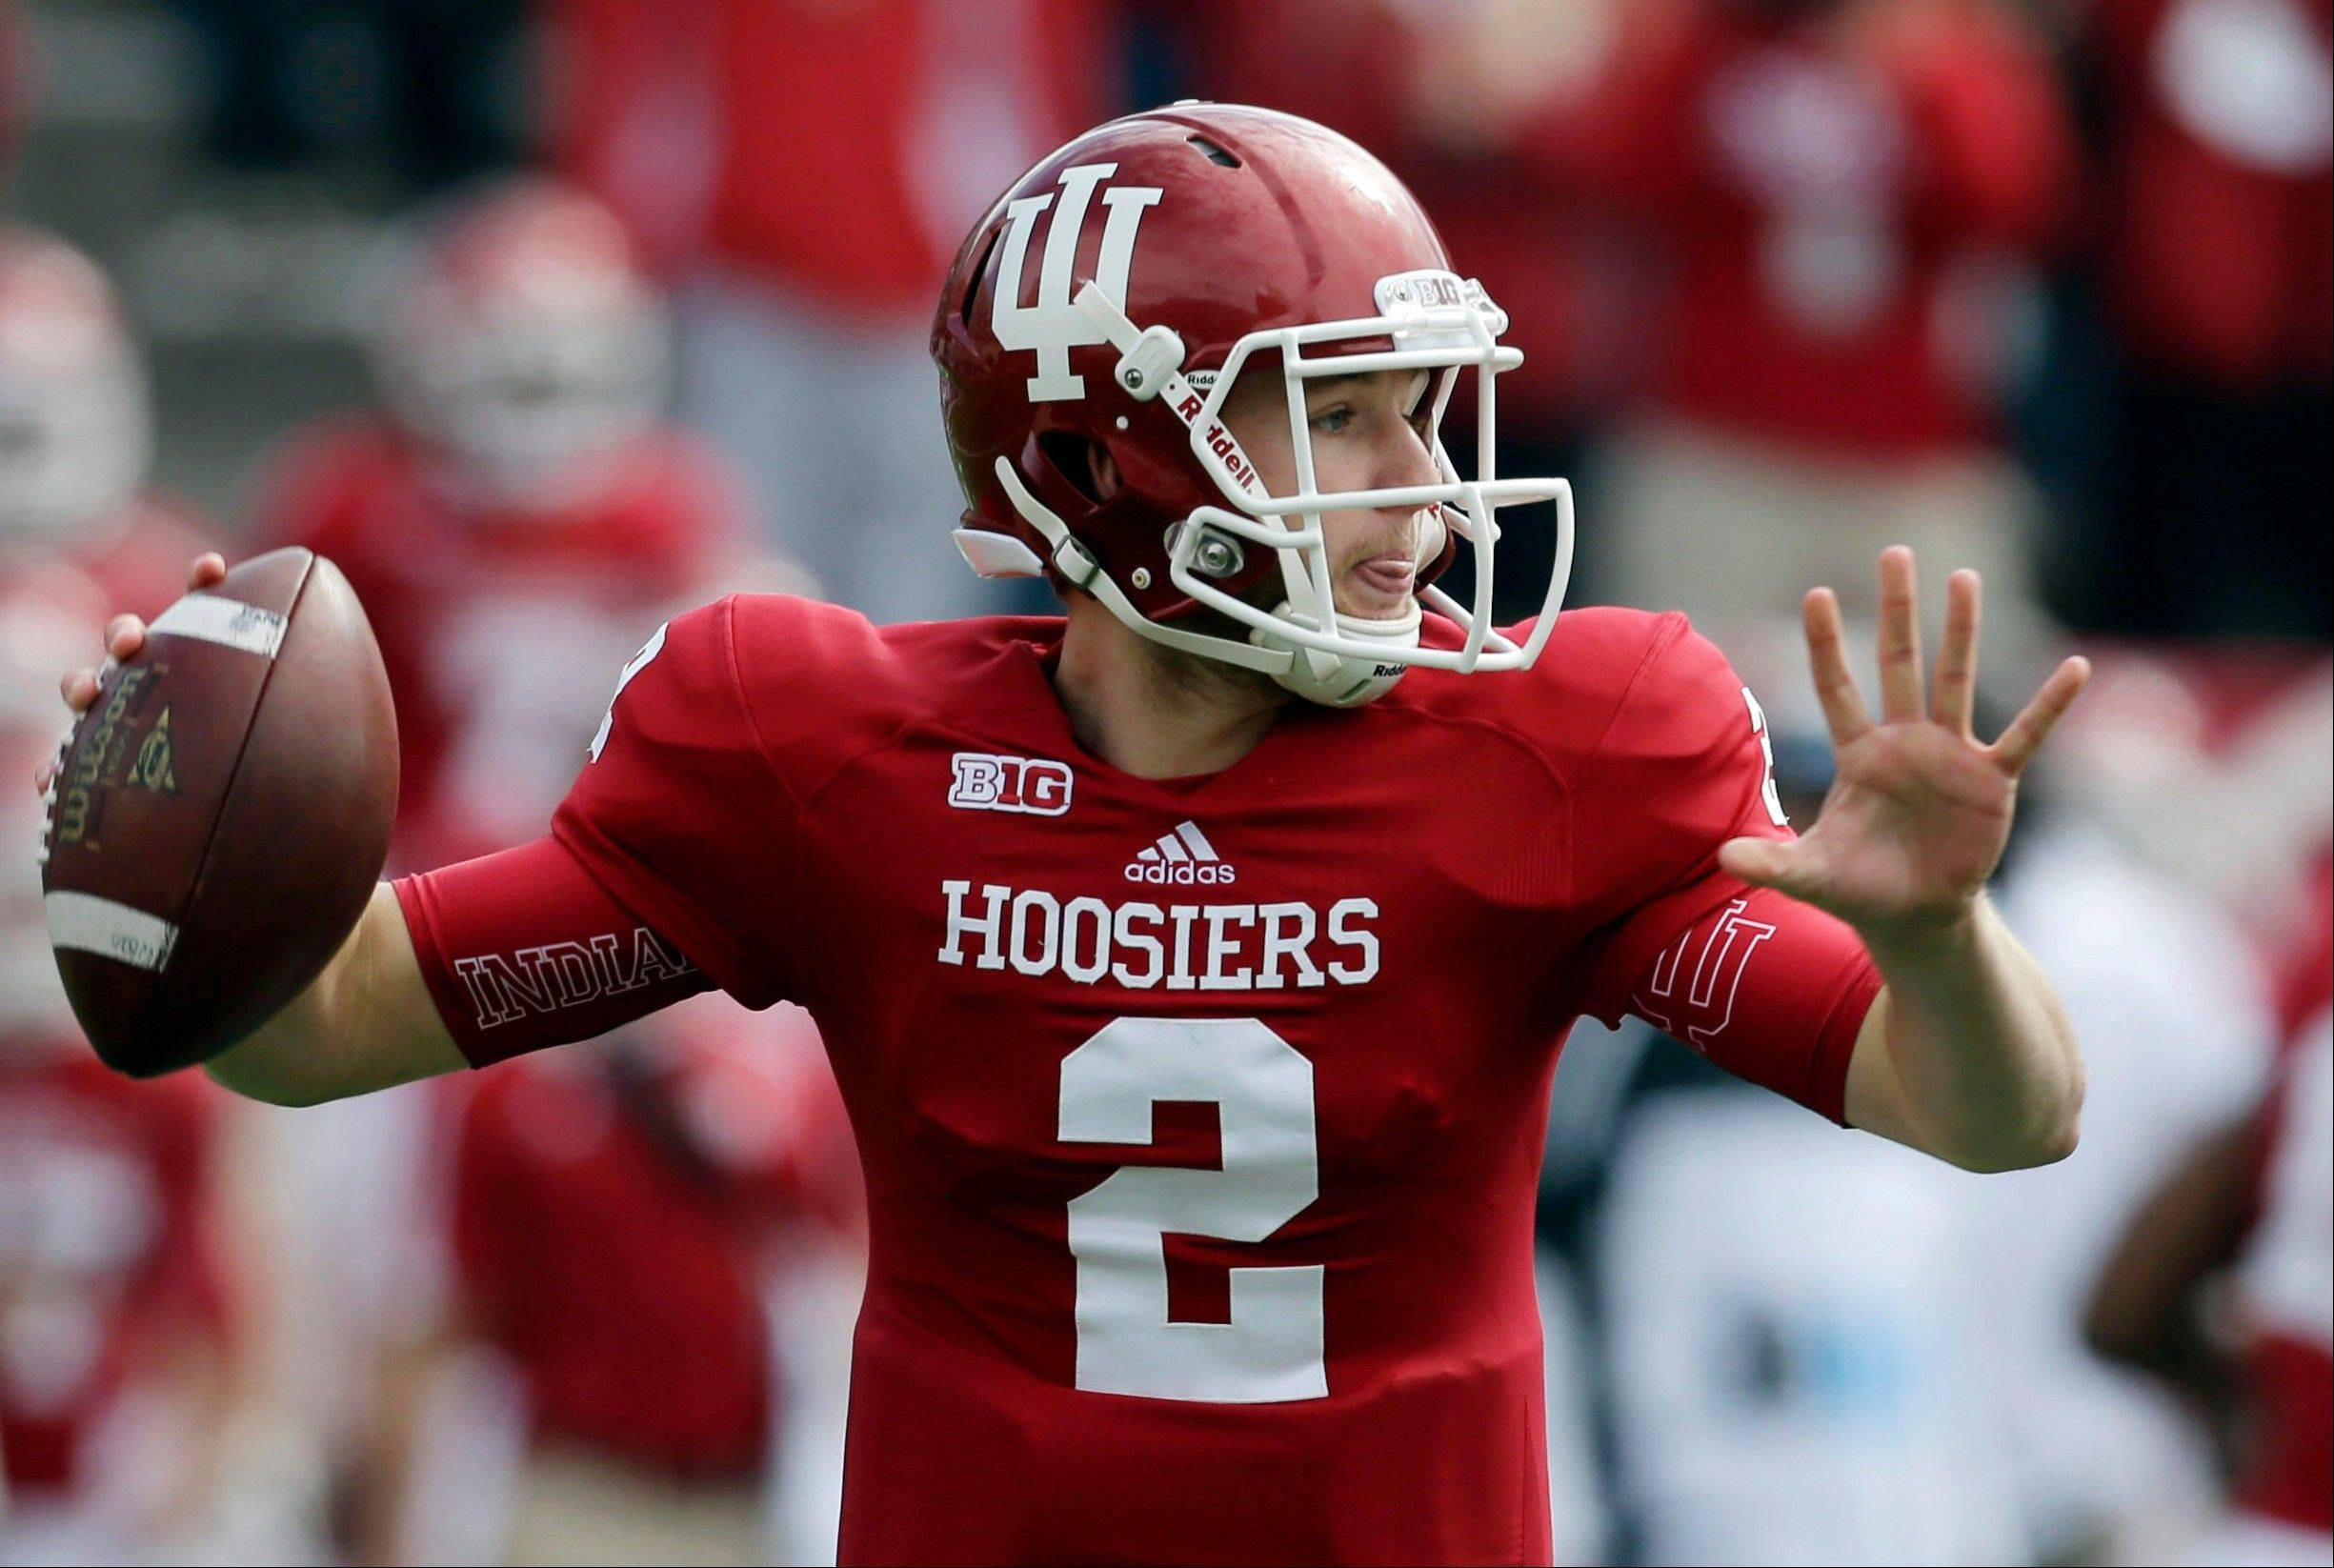 Indiana quarterback Cameron Coffman throws during the first half against Michigan State last Saturday in Bloomington, Ind.